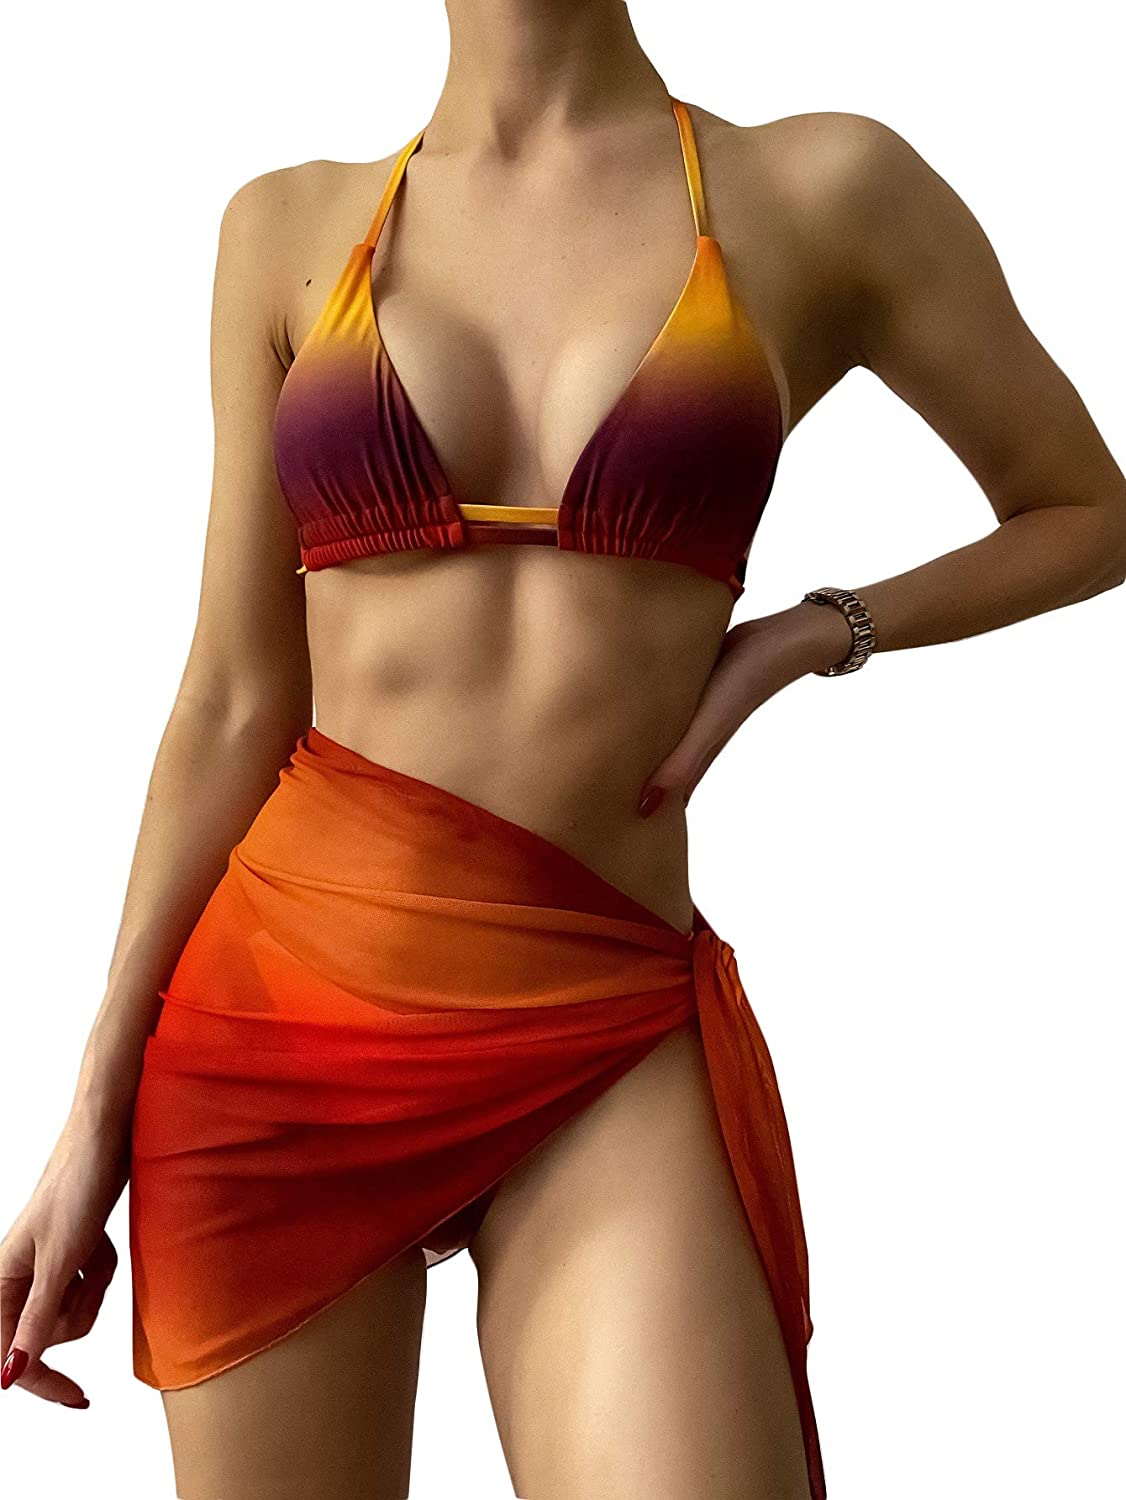 Floerns Women's Tie Dye Triangle Bikini Set with Cover Up Skirt 3 Piece Swimsuits